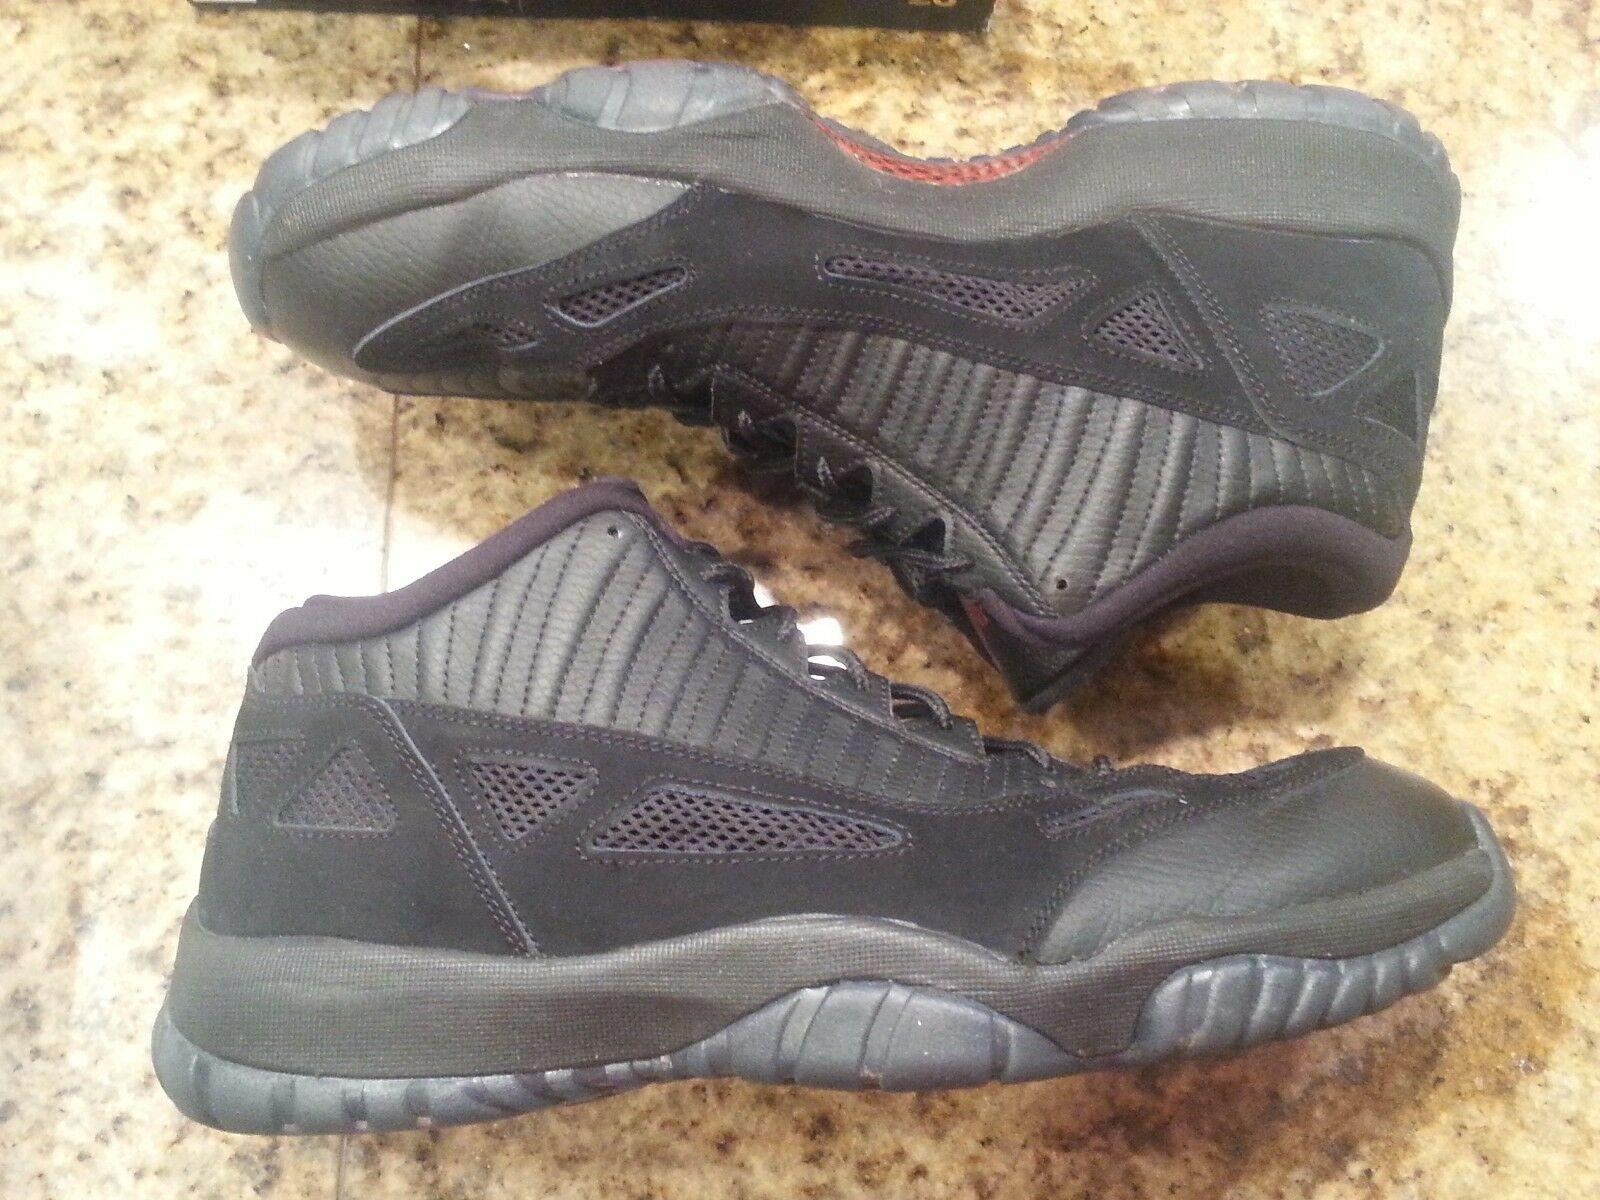 26dda5be9757b5 2015 Nike Air Jordan 11 XI Low Retro Bred Referee 306008-003 Size 12 for  sale online